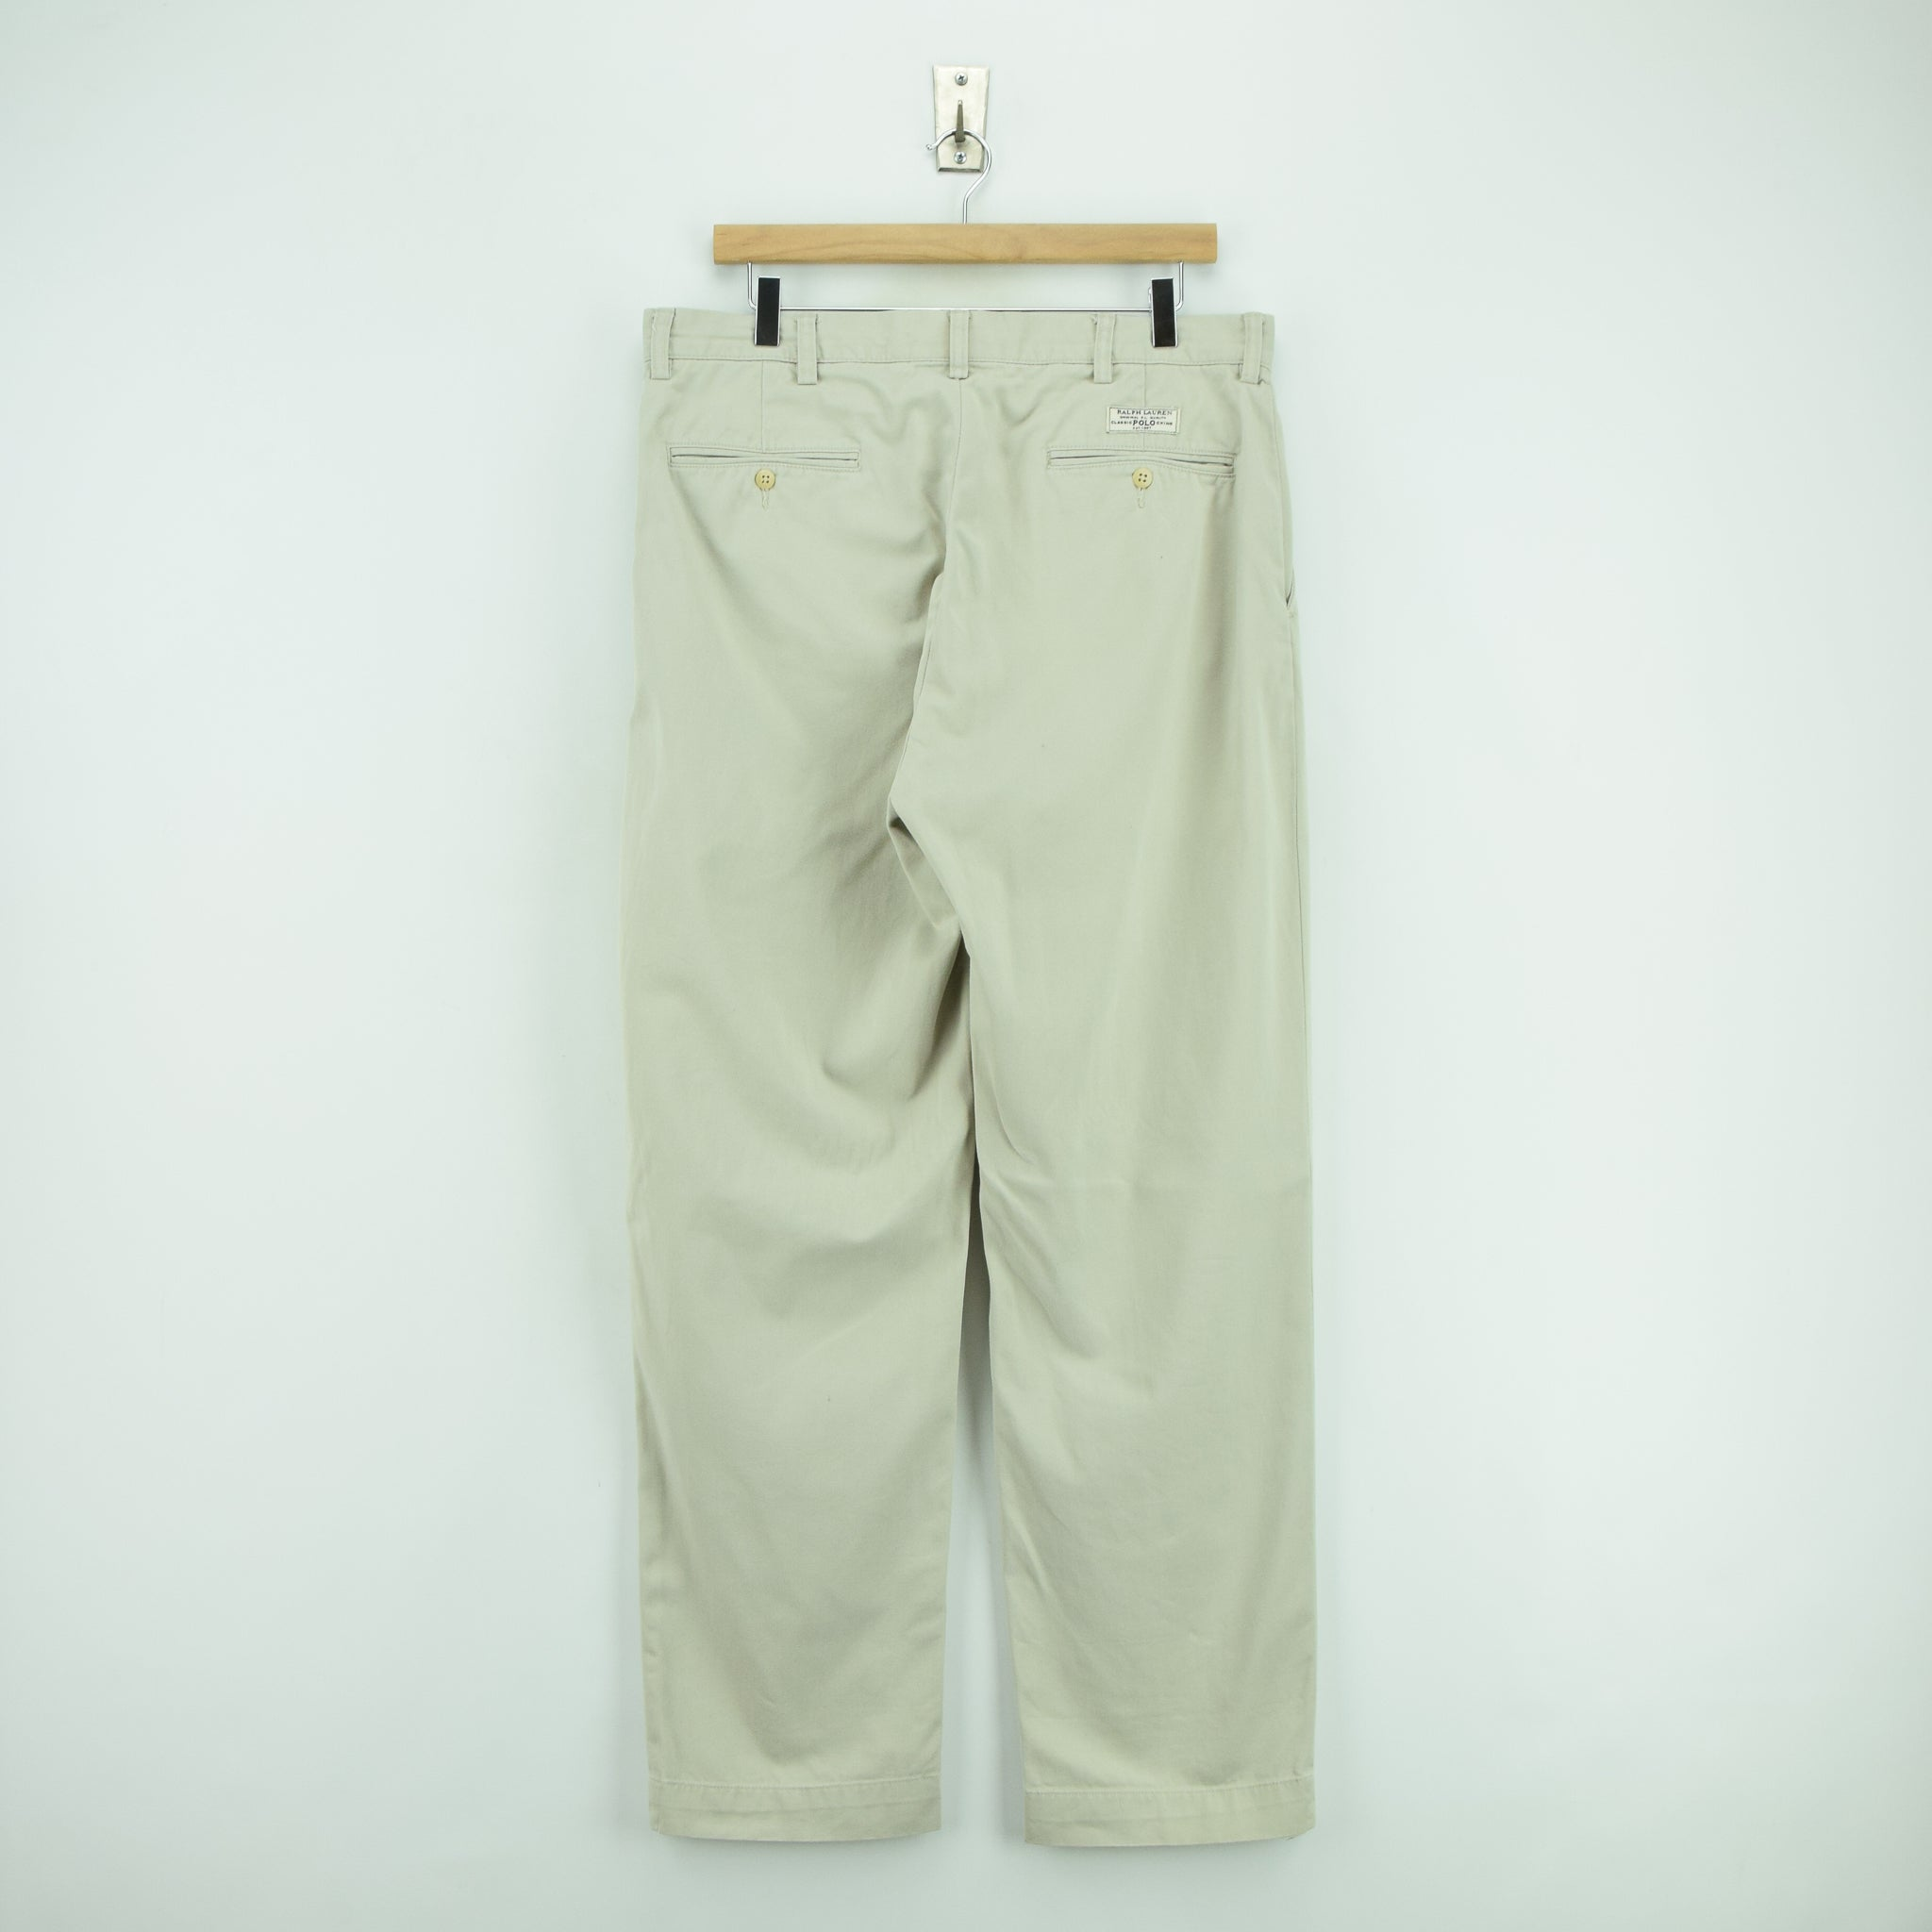 Ralph Lauren Polo Prospect Pant Chinos Stone Flat Front Trousers 32 W 30 L back